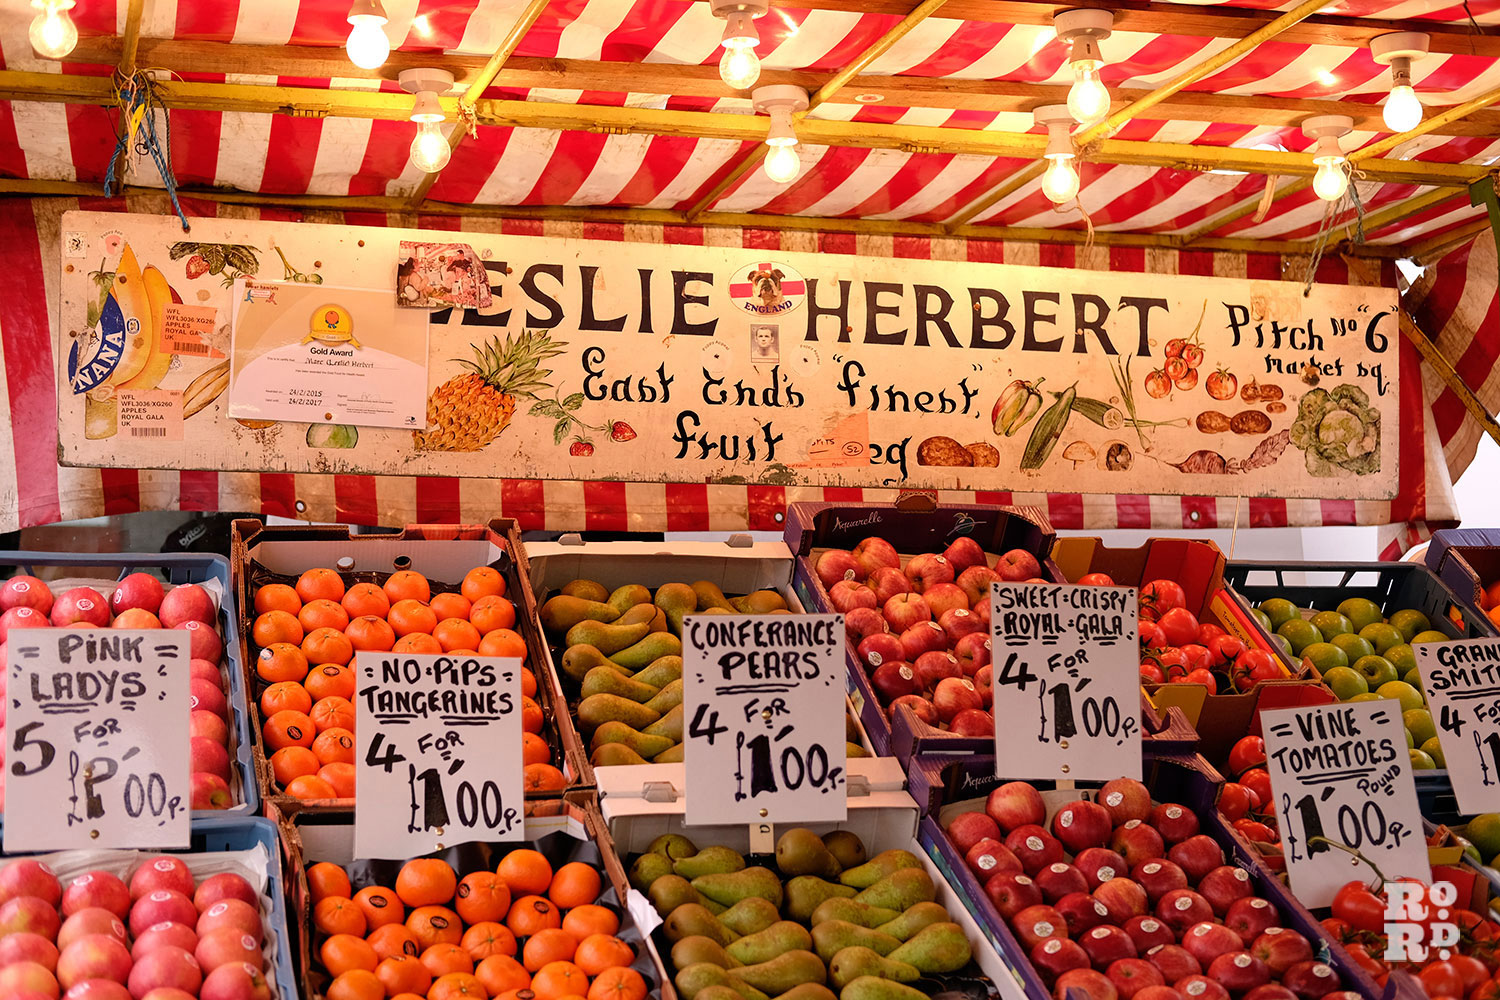 Fruit and veg on Leslie Herbet market stall on Roman Road in Globe Town, East London